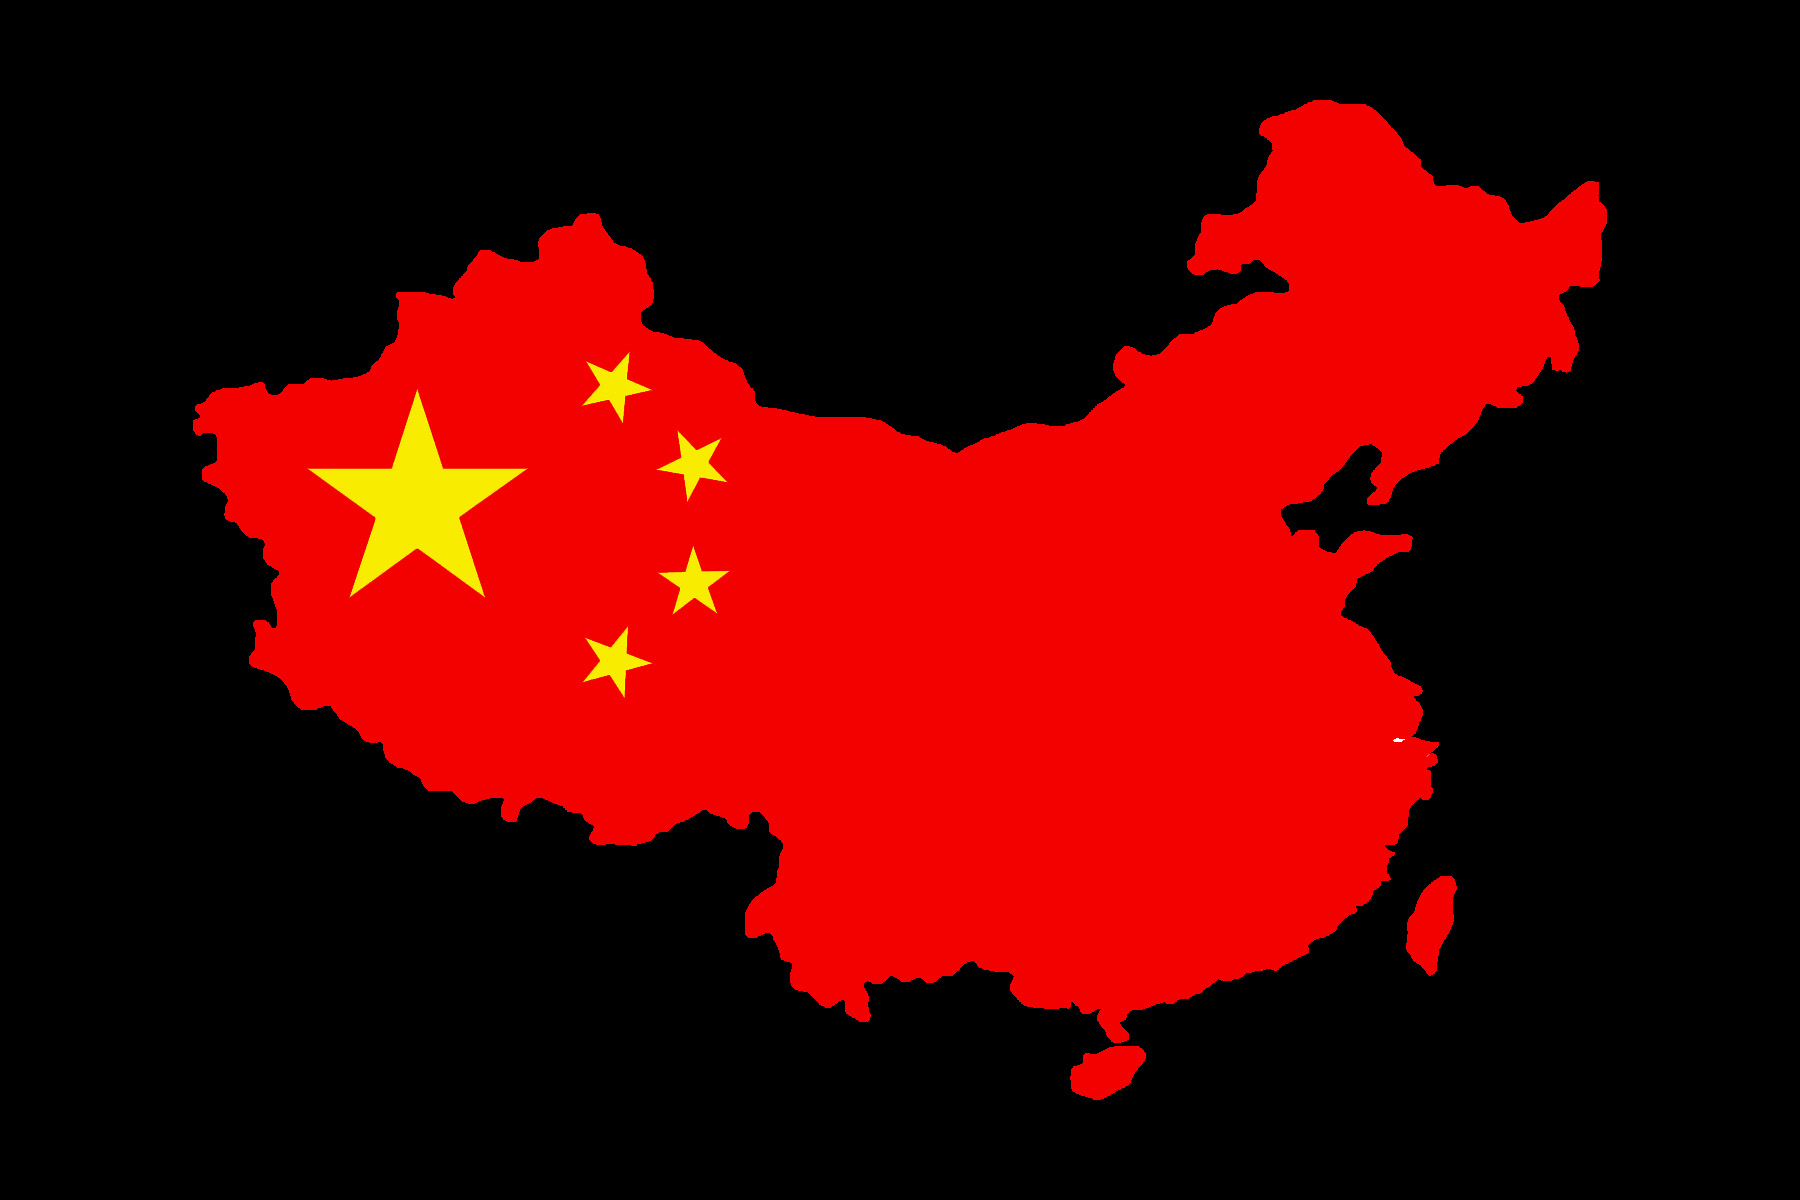 China Map over Black Background 2705.33 Kb